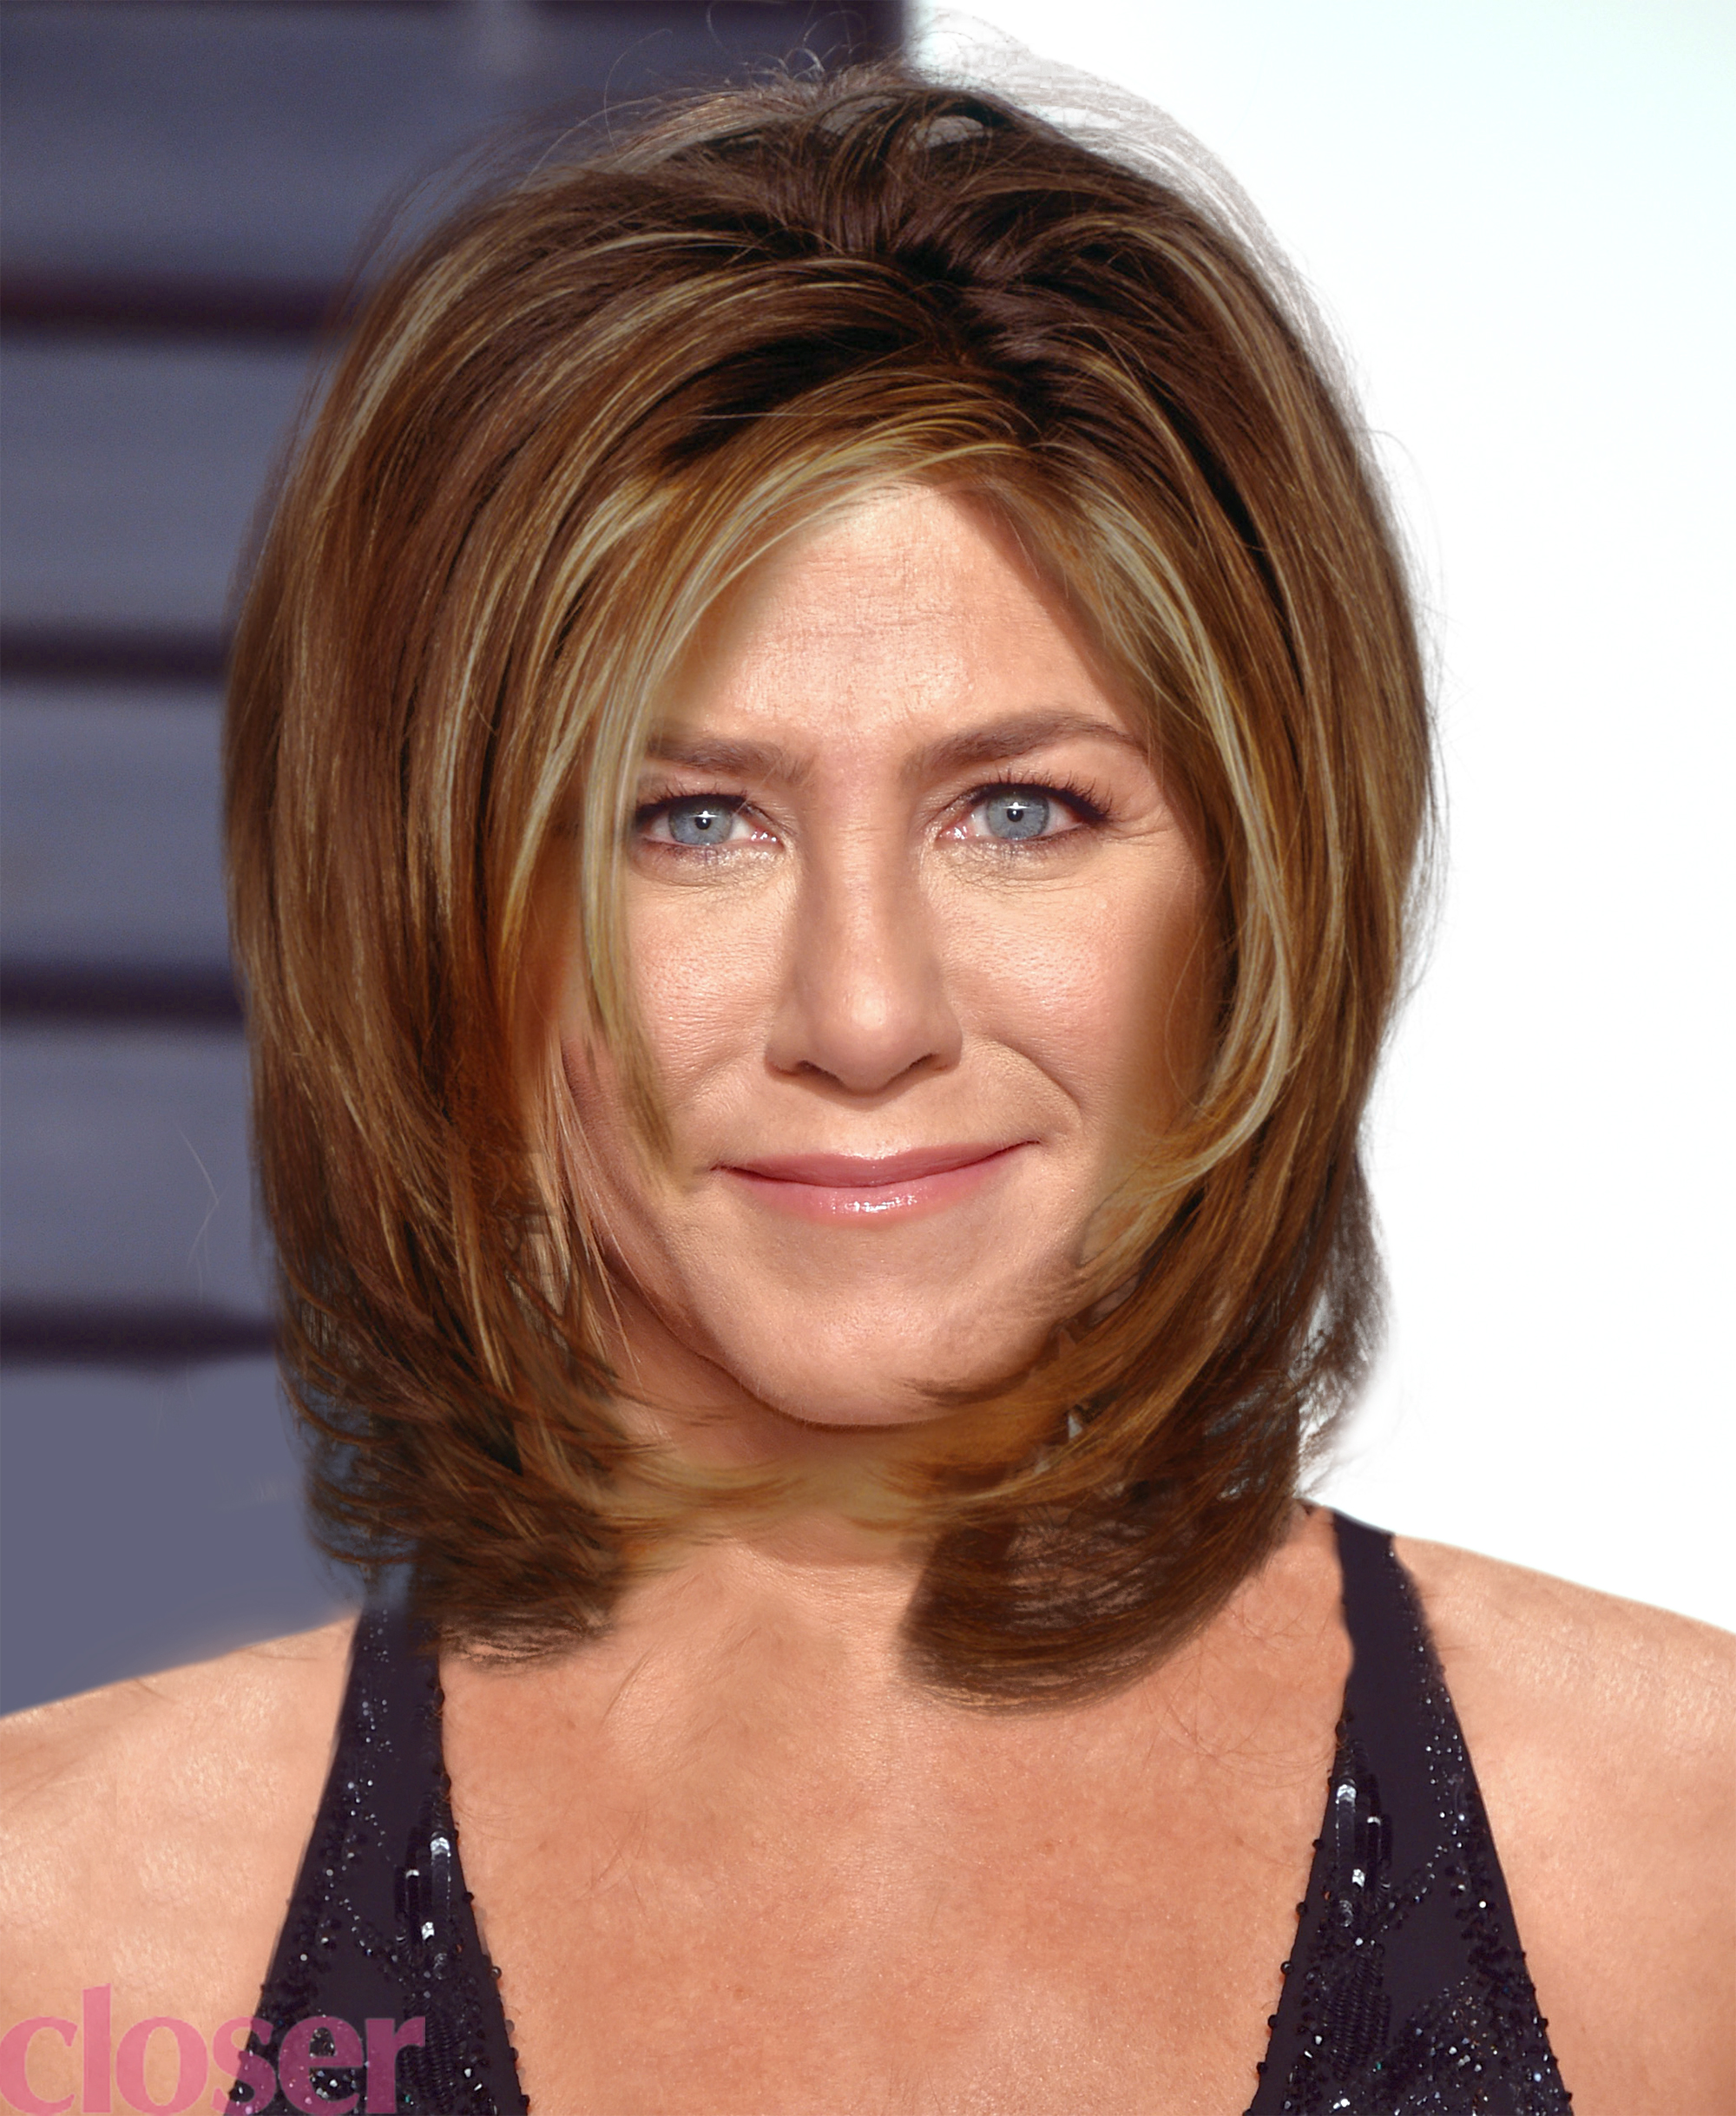 Celebrities 90s Hairstyles \u2014 Photoshop Pics of Stars With